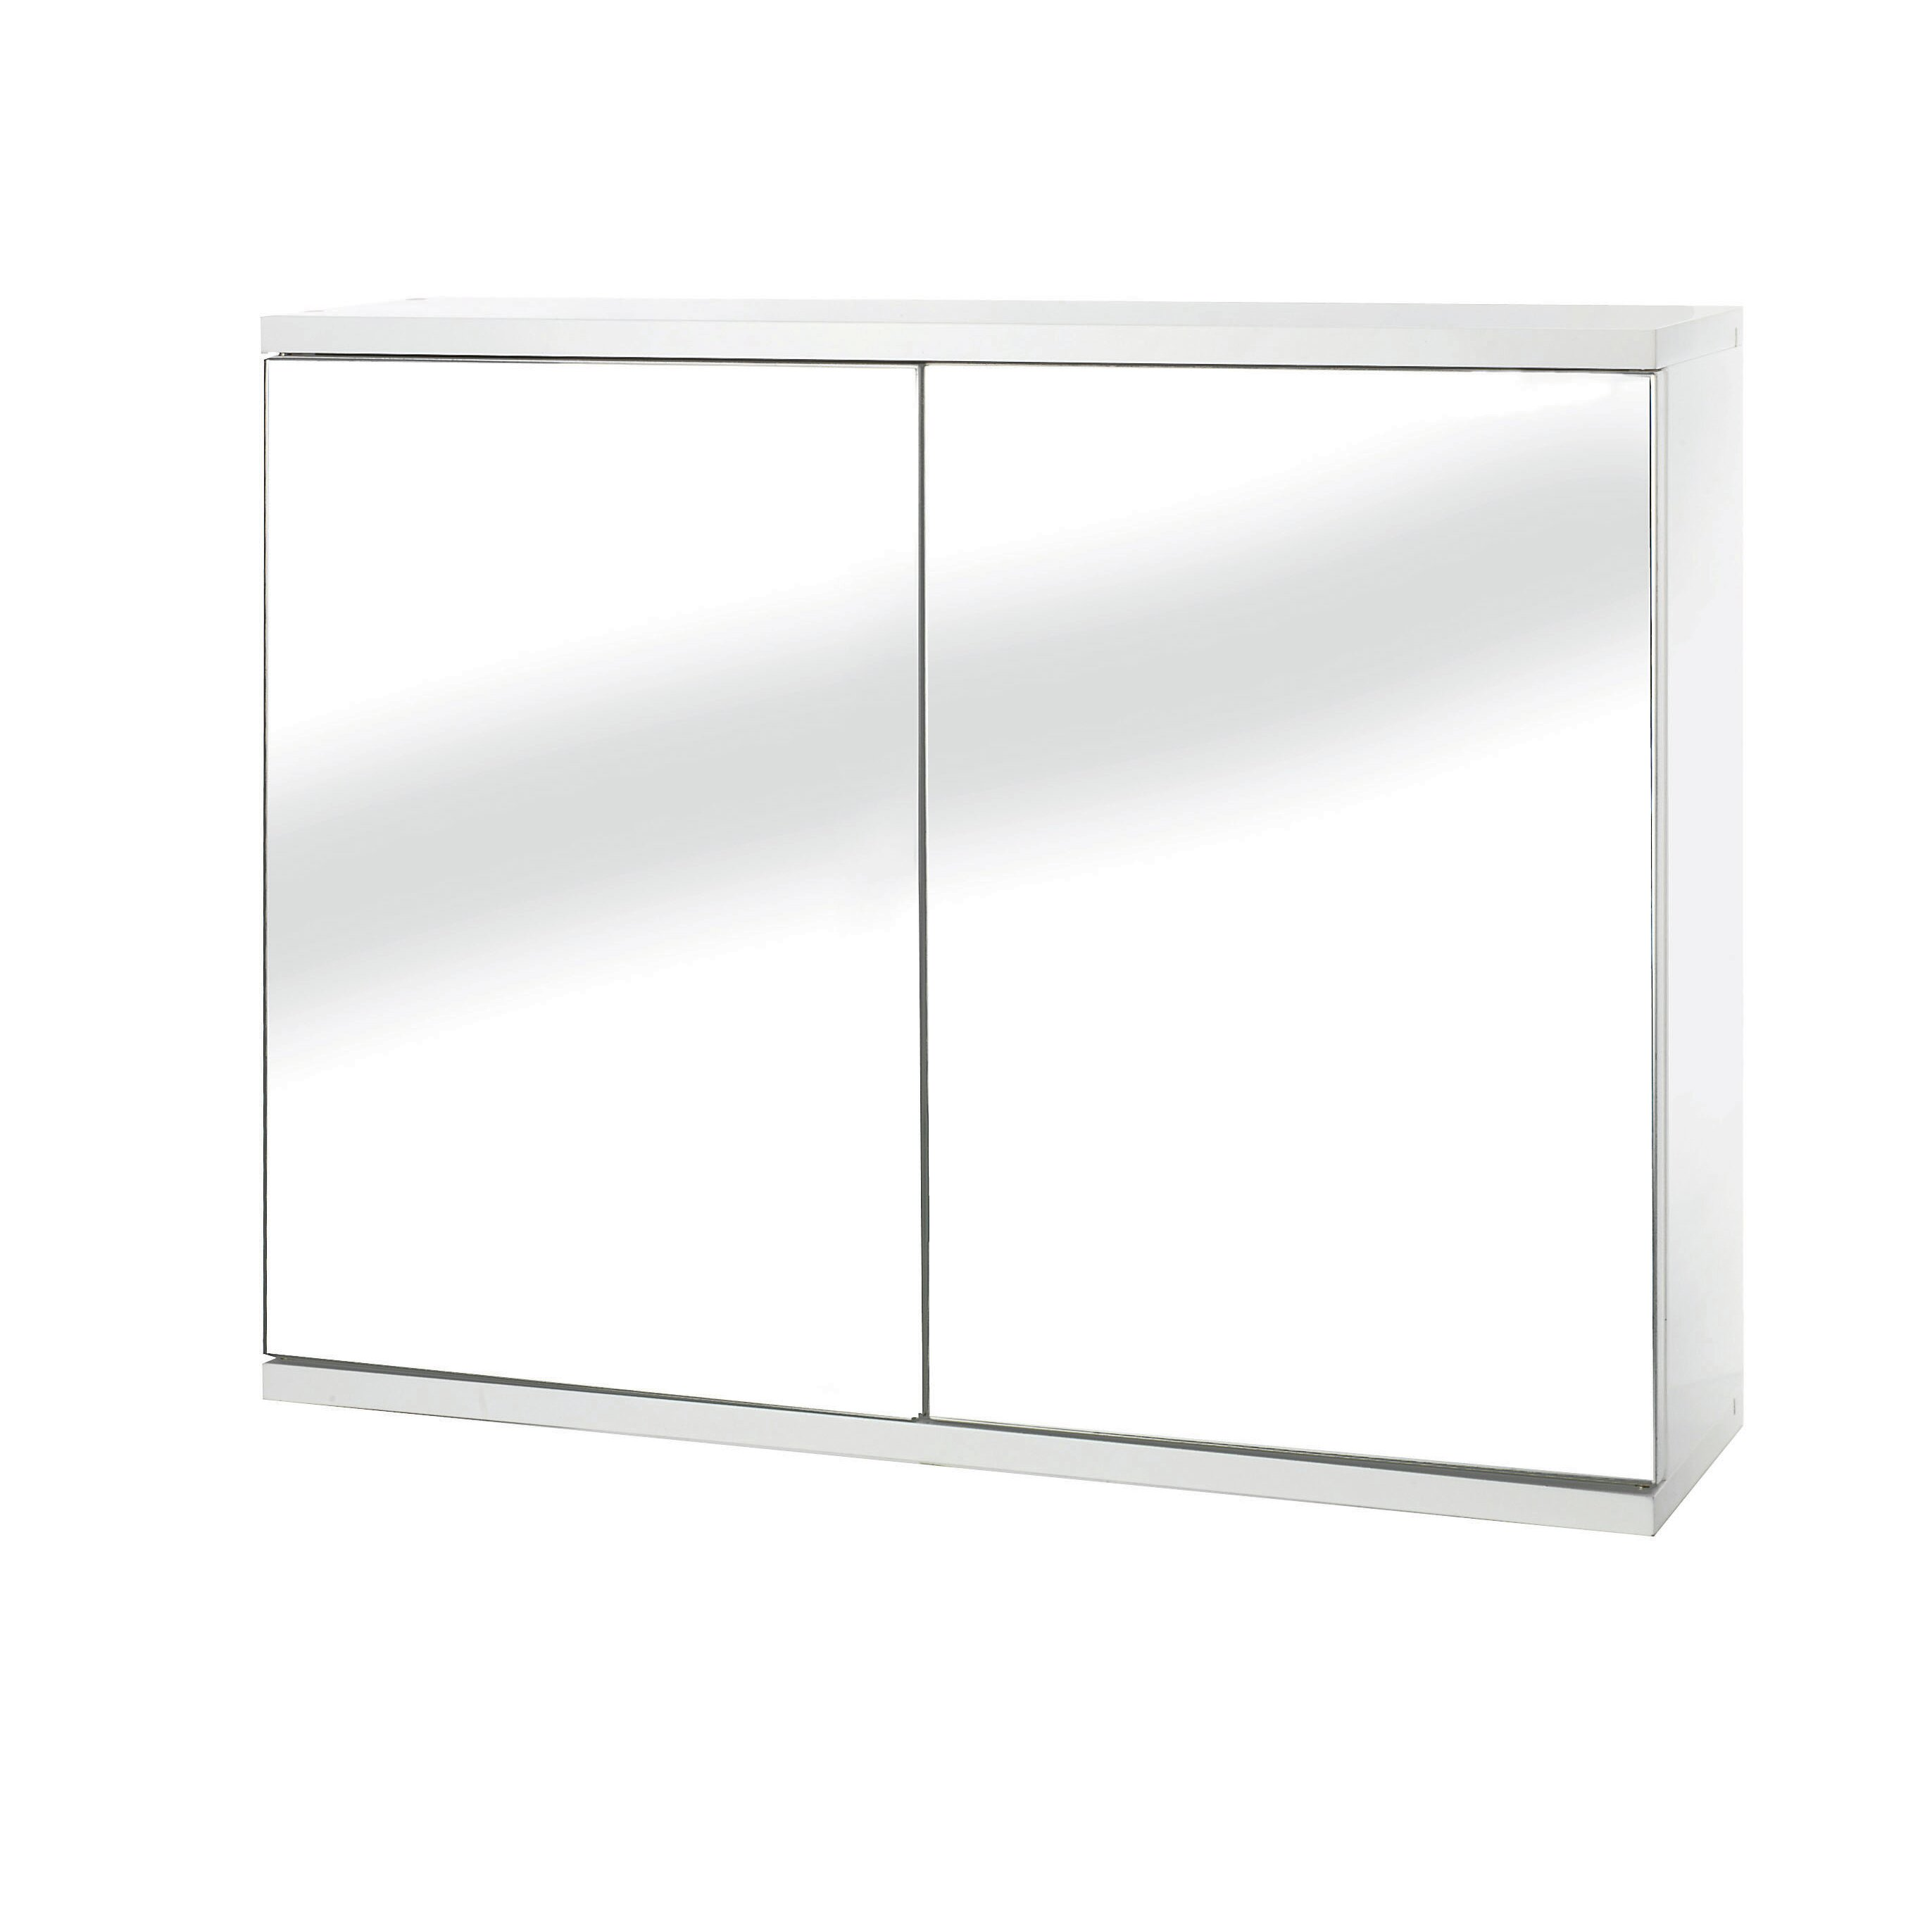 Belfry simplicity 60cm x 45cm surface mount mirror cabinet for Bathroom cabinets 60cm